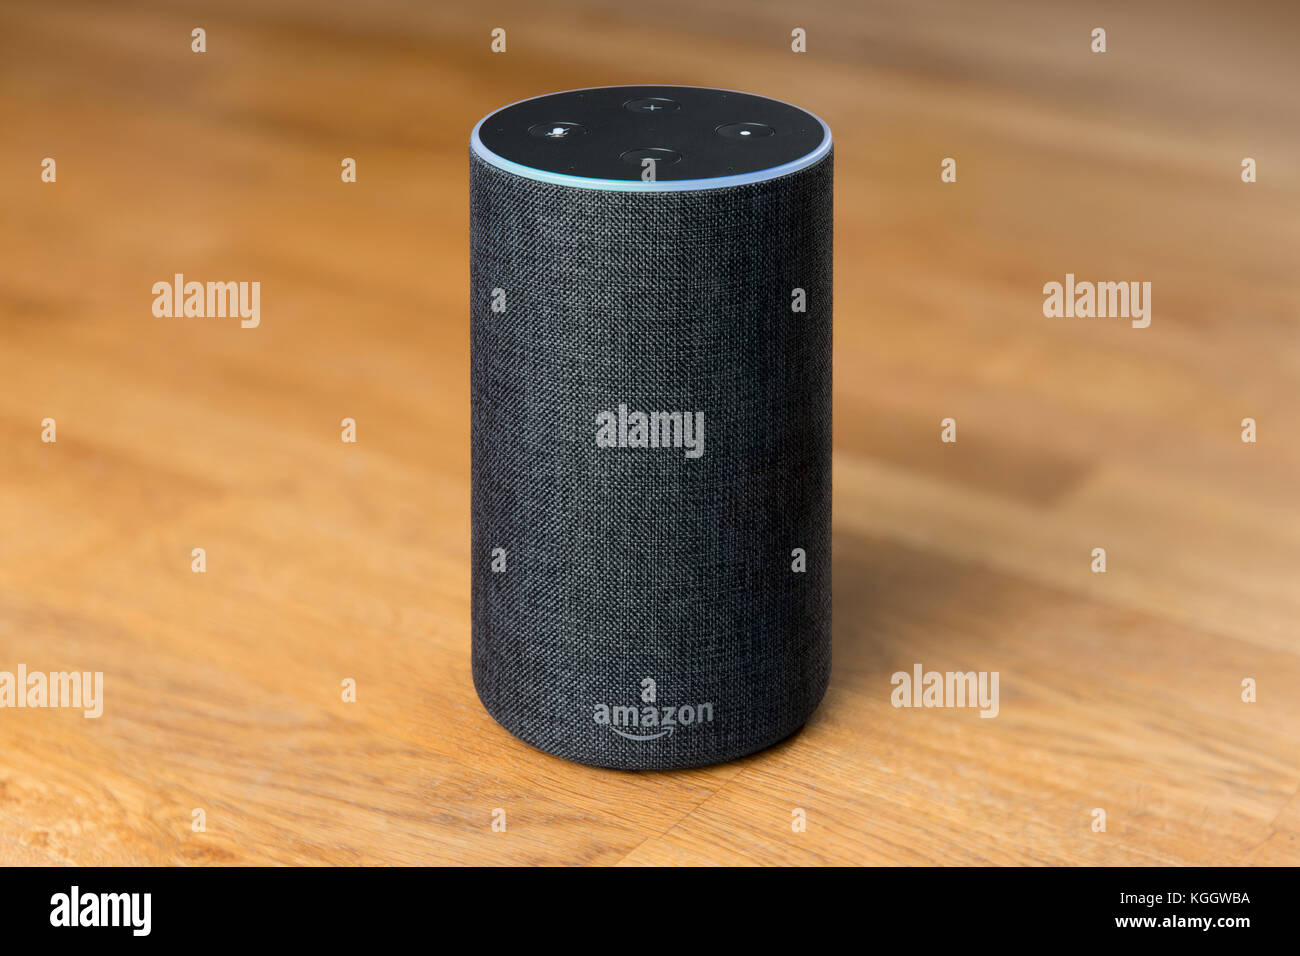 The 2017 release of a charcoal Amazon Echo (2nd generation) smart speaker and intelligent personal assistant Alexa - Stock Image